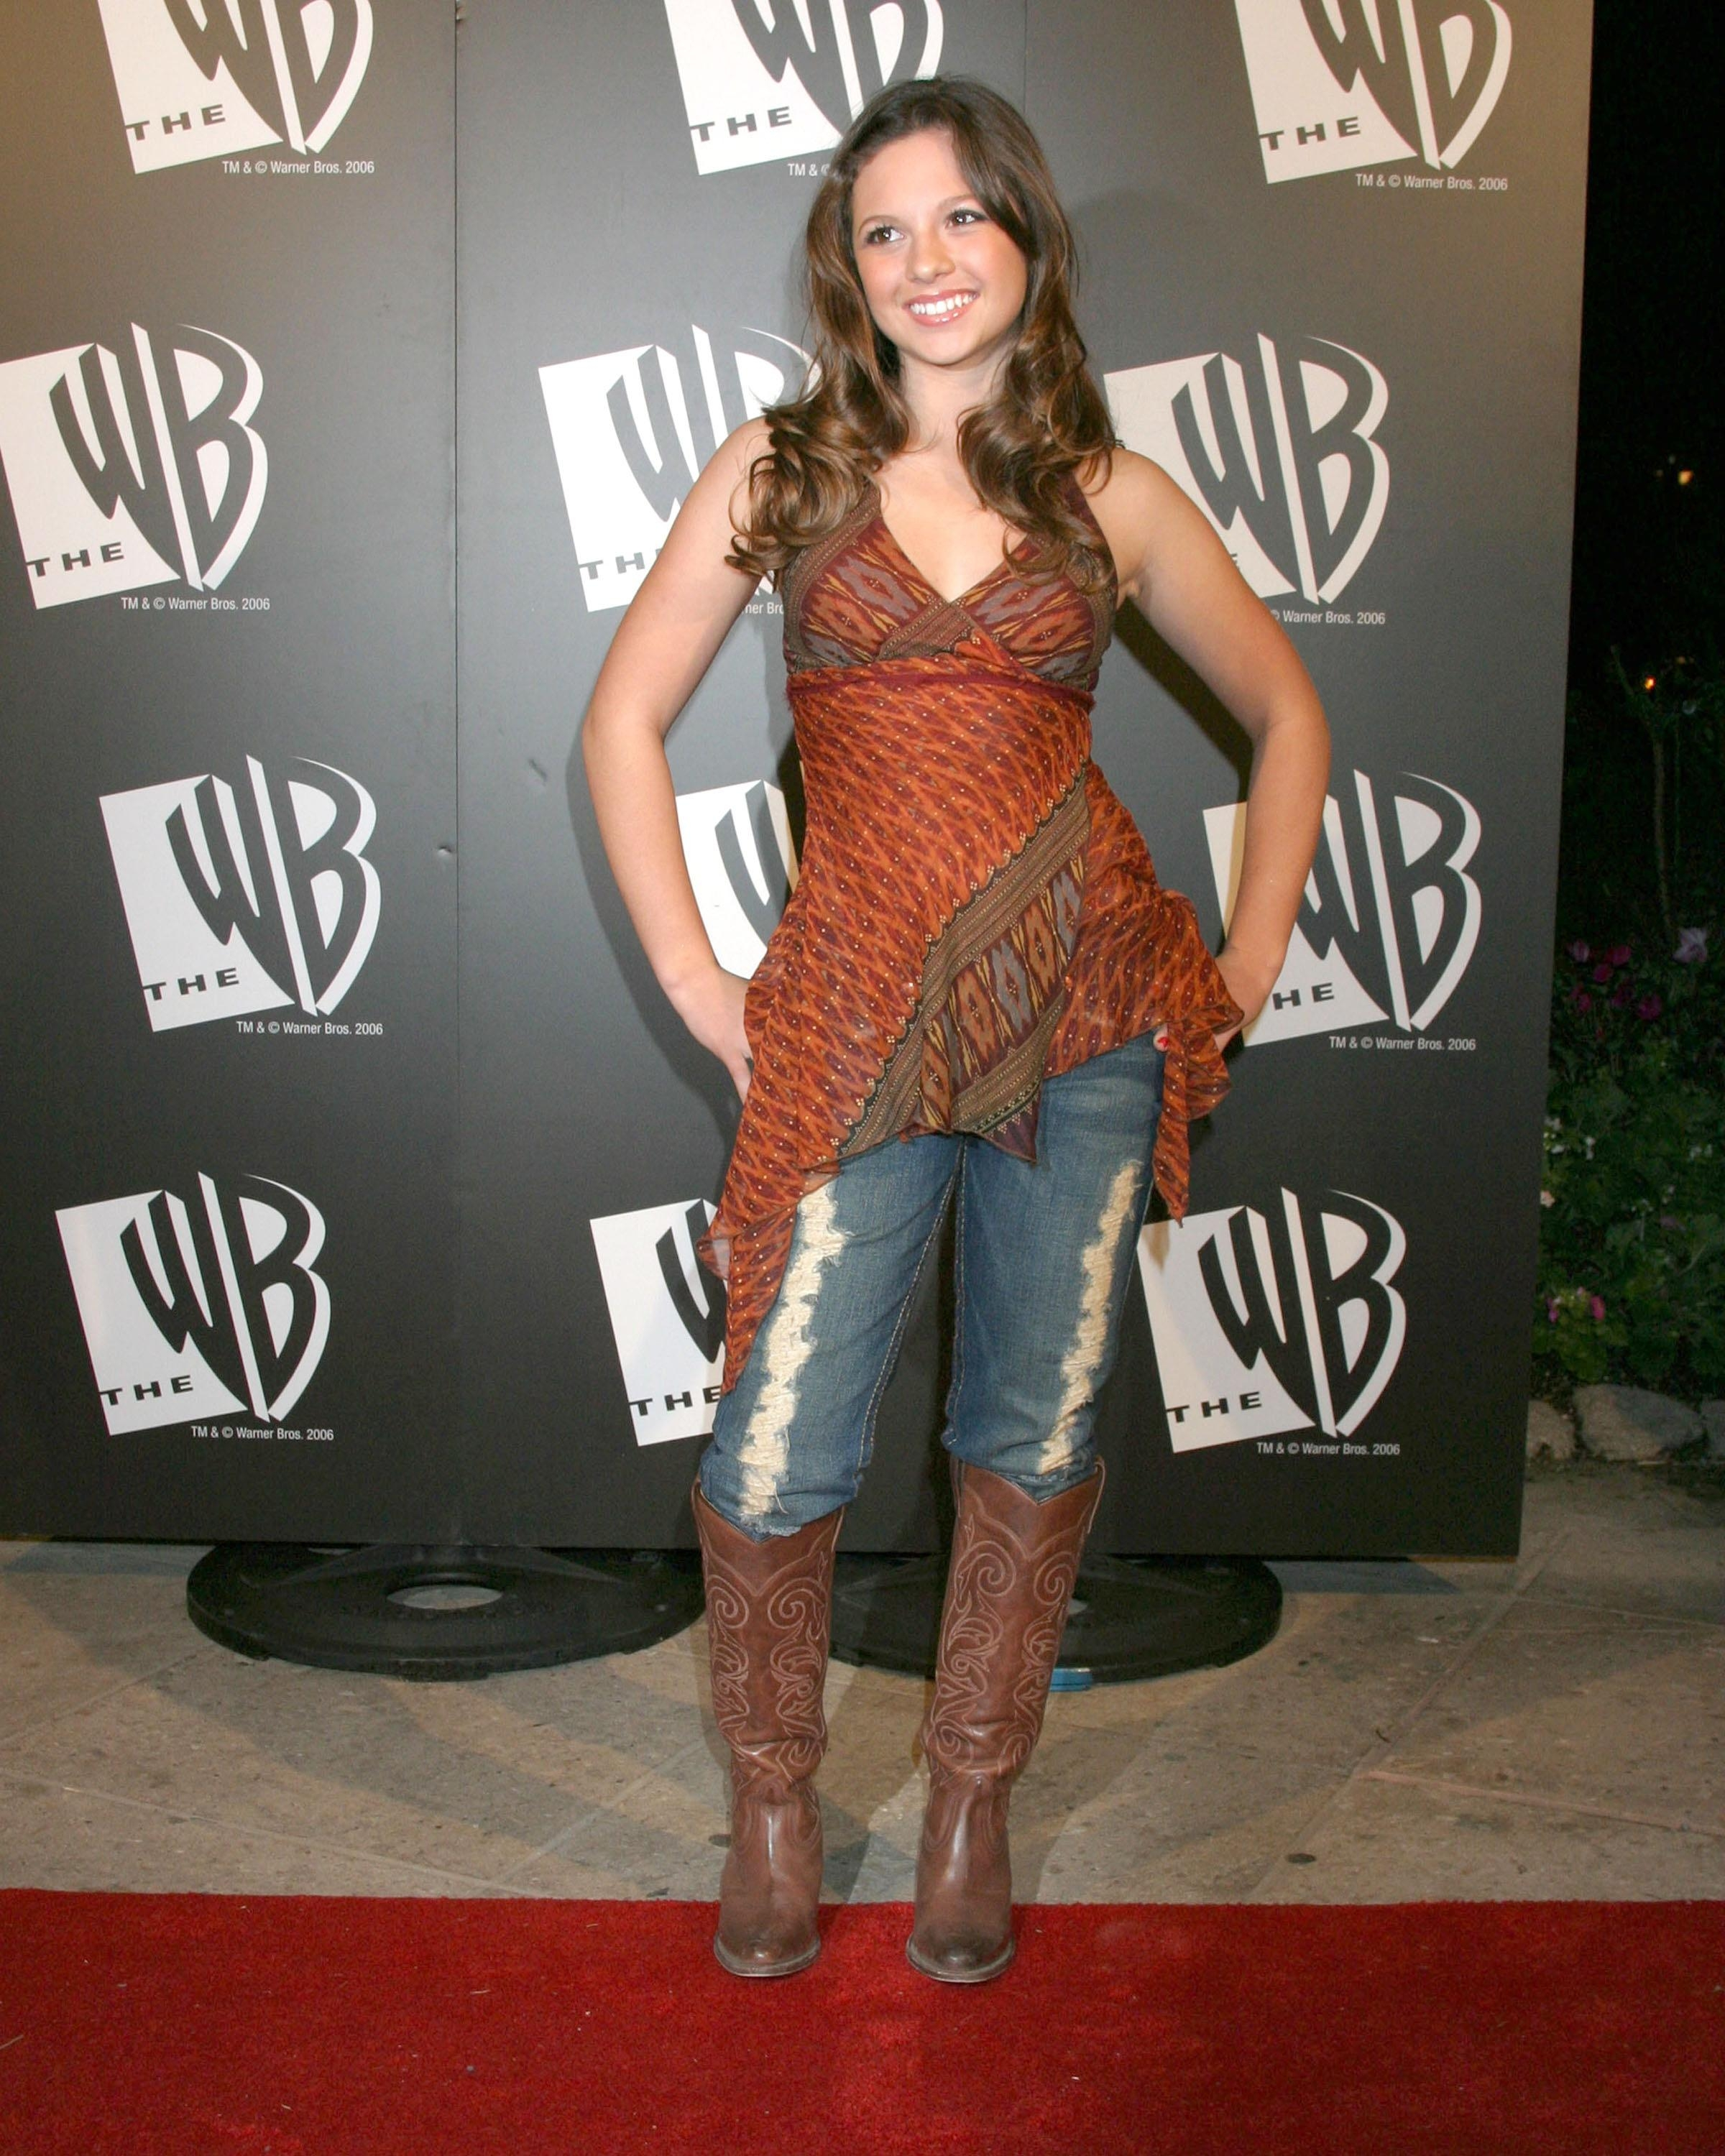 Photos de Mackenzie Rosman - The WB Networks 2006 All Star Party - 8